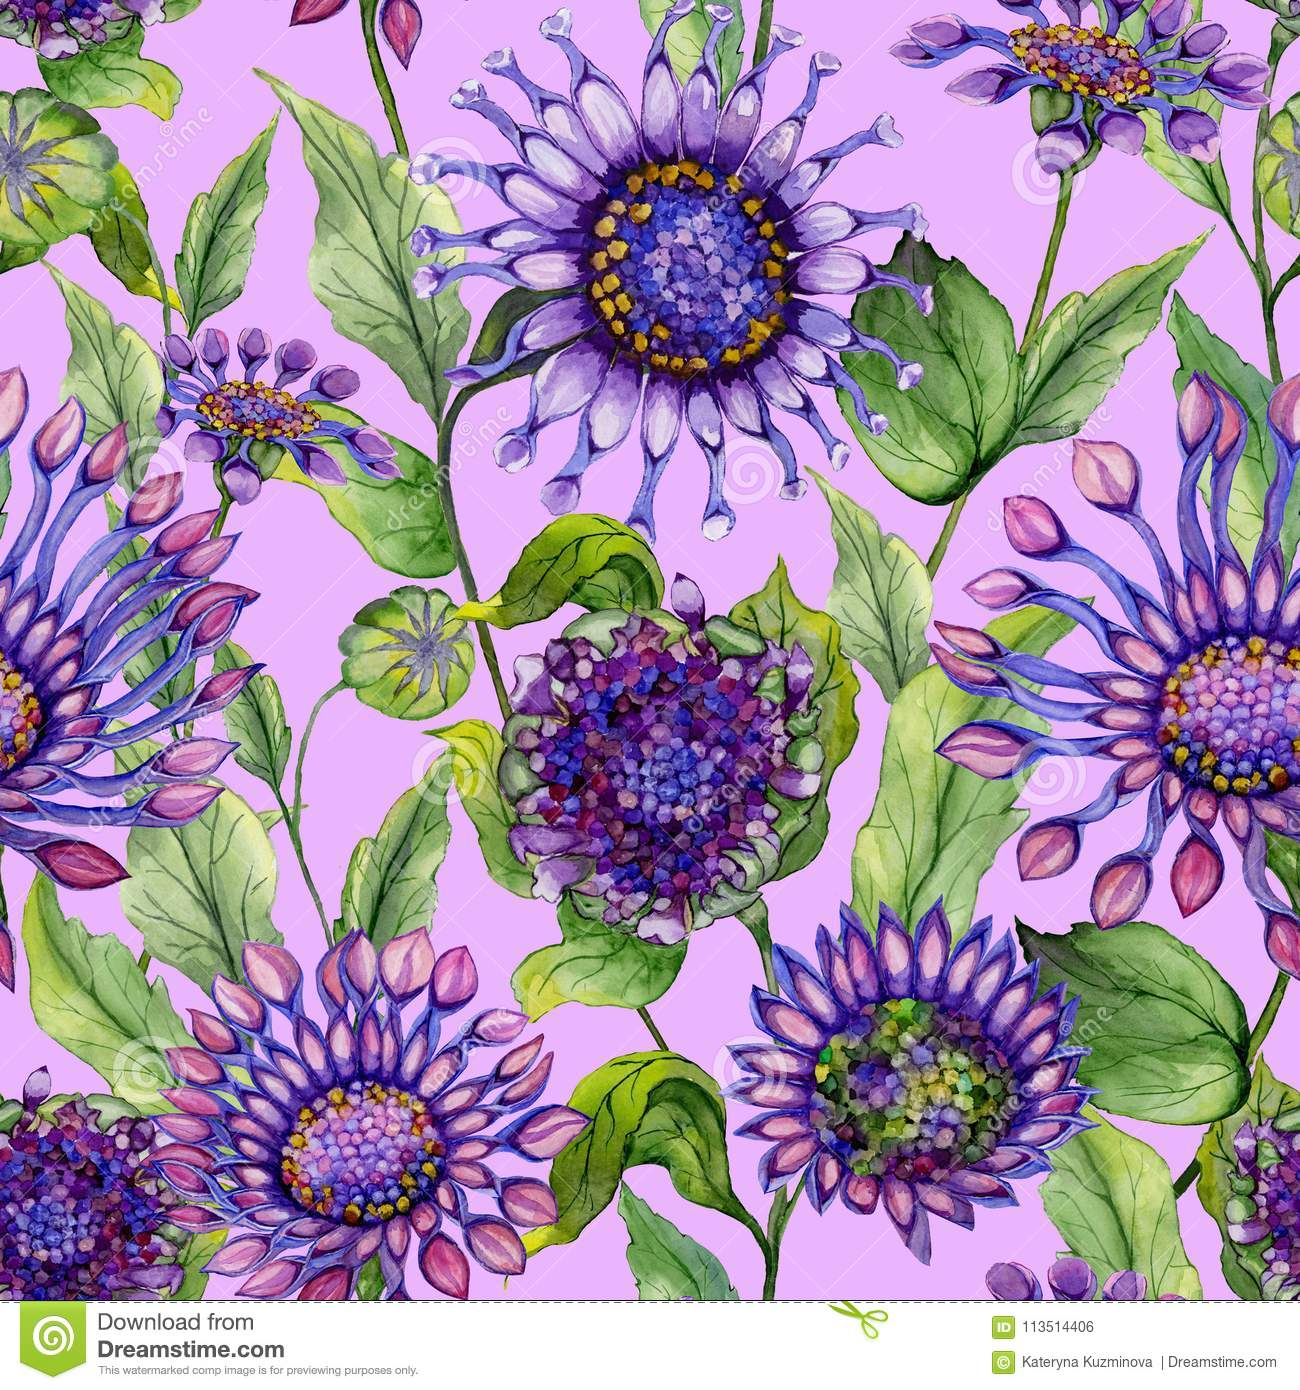 Beautiful Large Vivid African Daisy Flowers With Green Leaves On